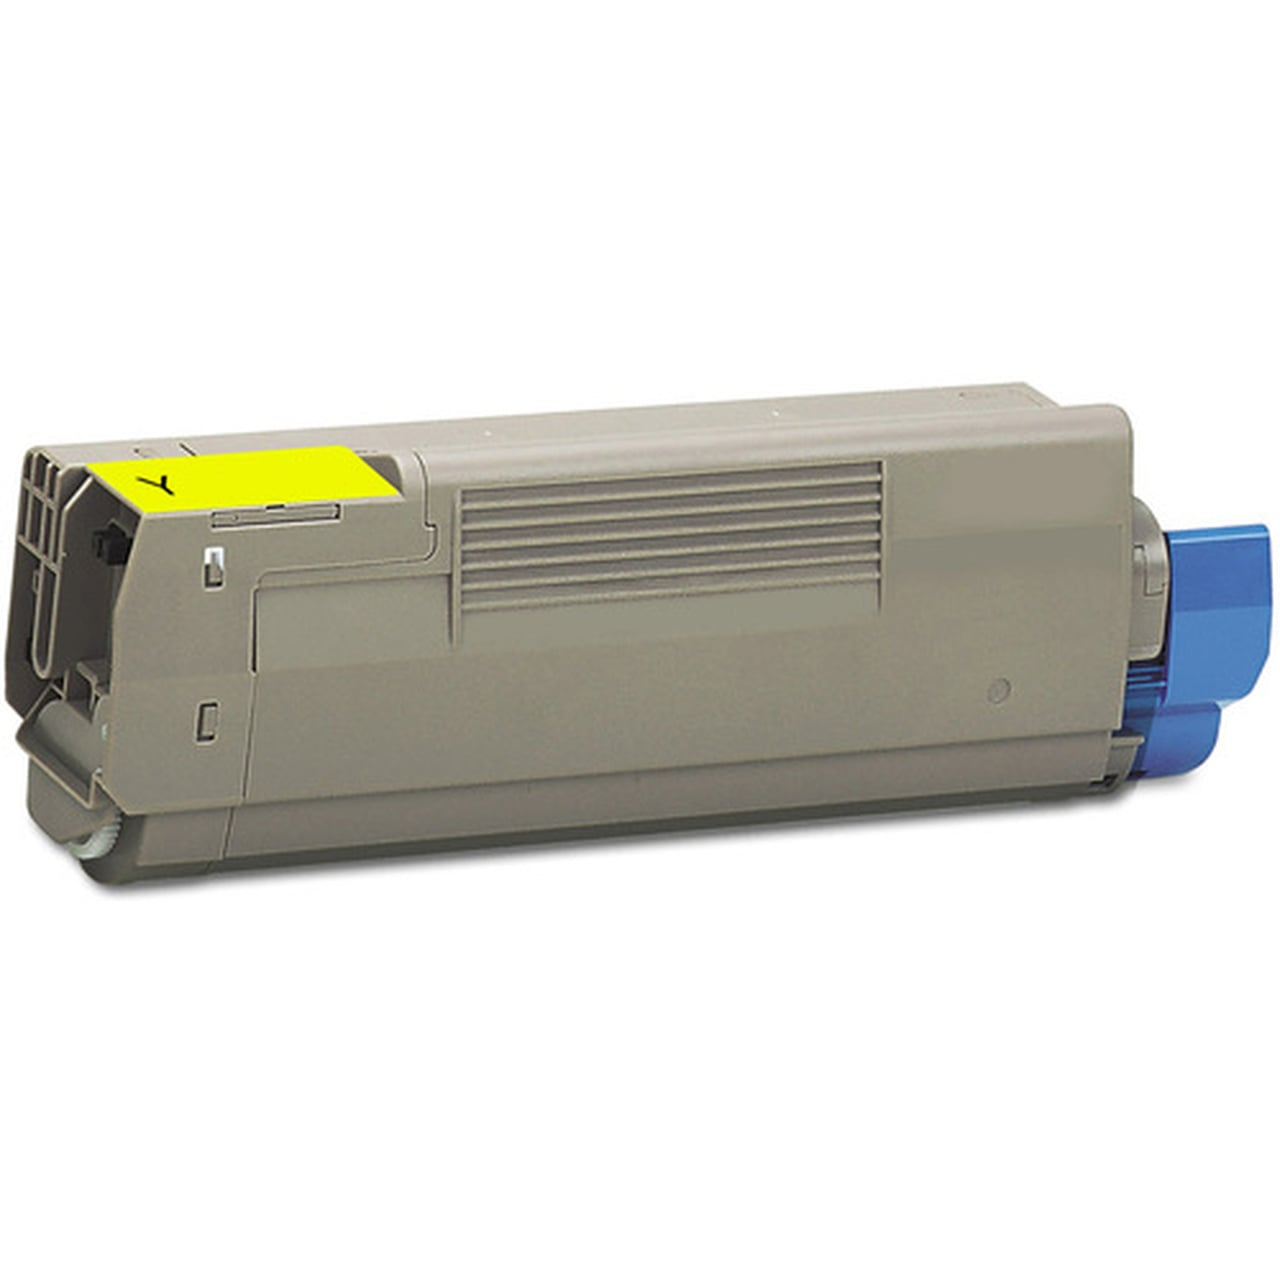 43487733 Toner Cartridge - Okidata Remanufactured  (Yellow)